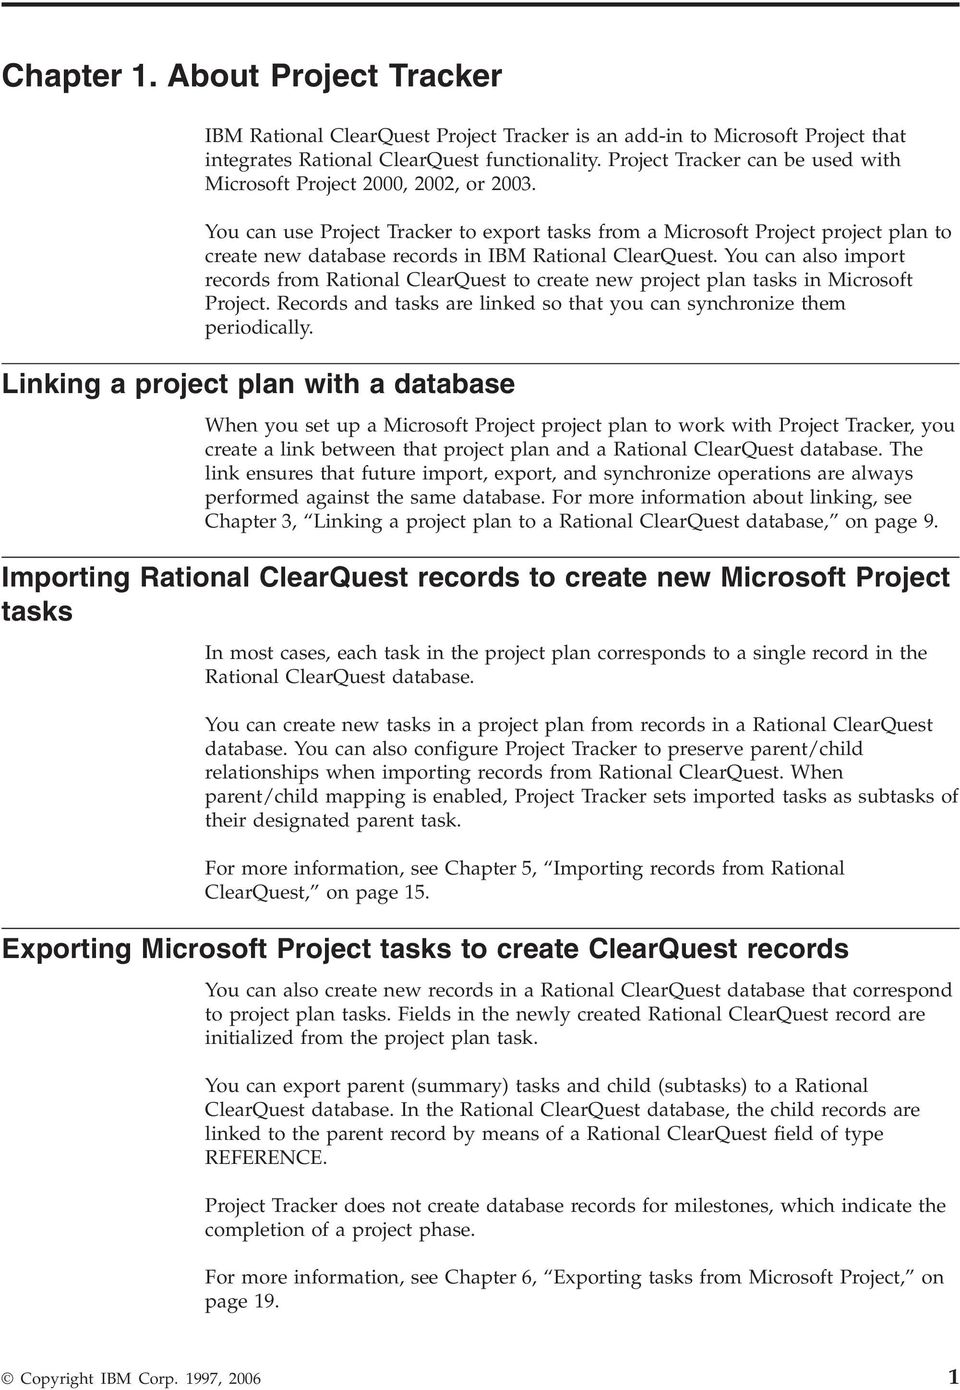 You can use Project Tracker to export tasks from a Microsoft Project project plan to create new database records in IBM Rational ClearQuest.